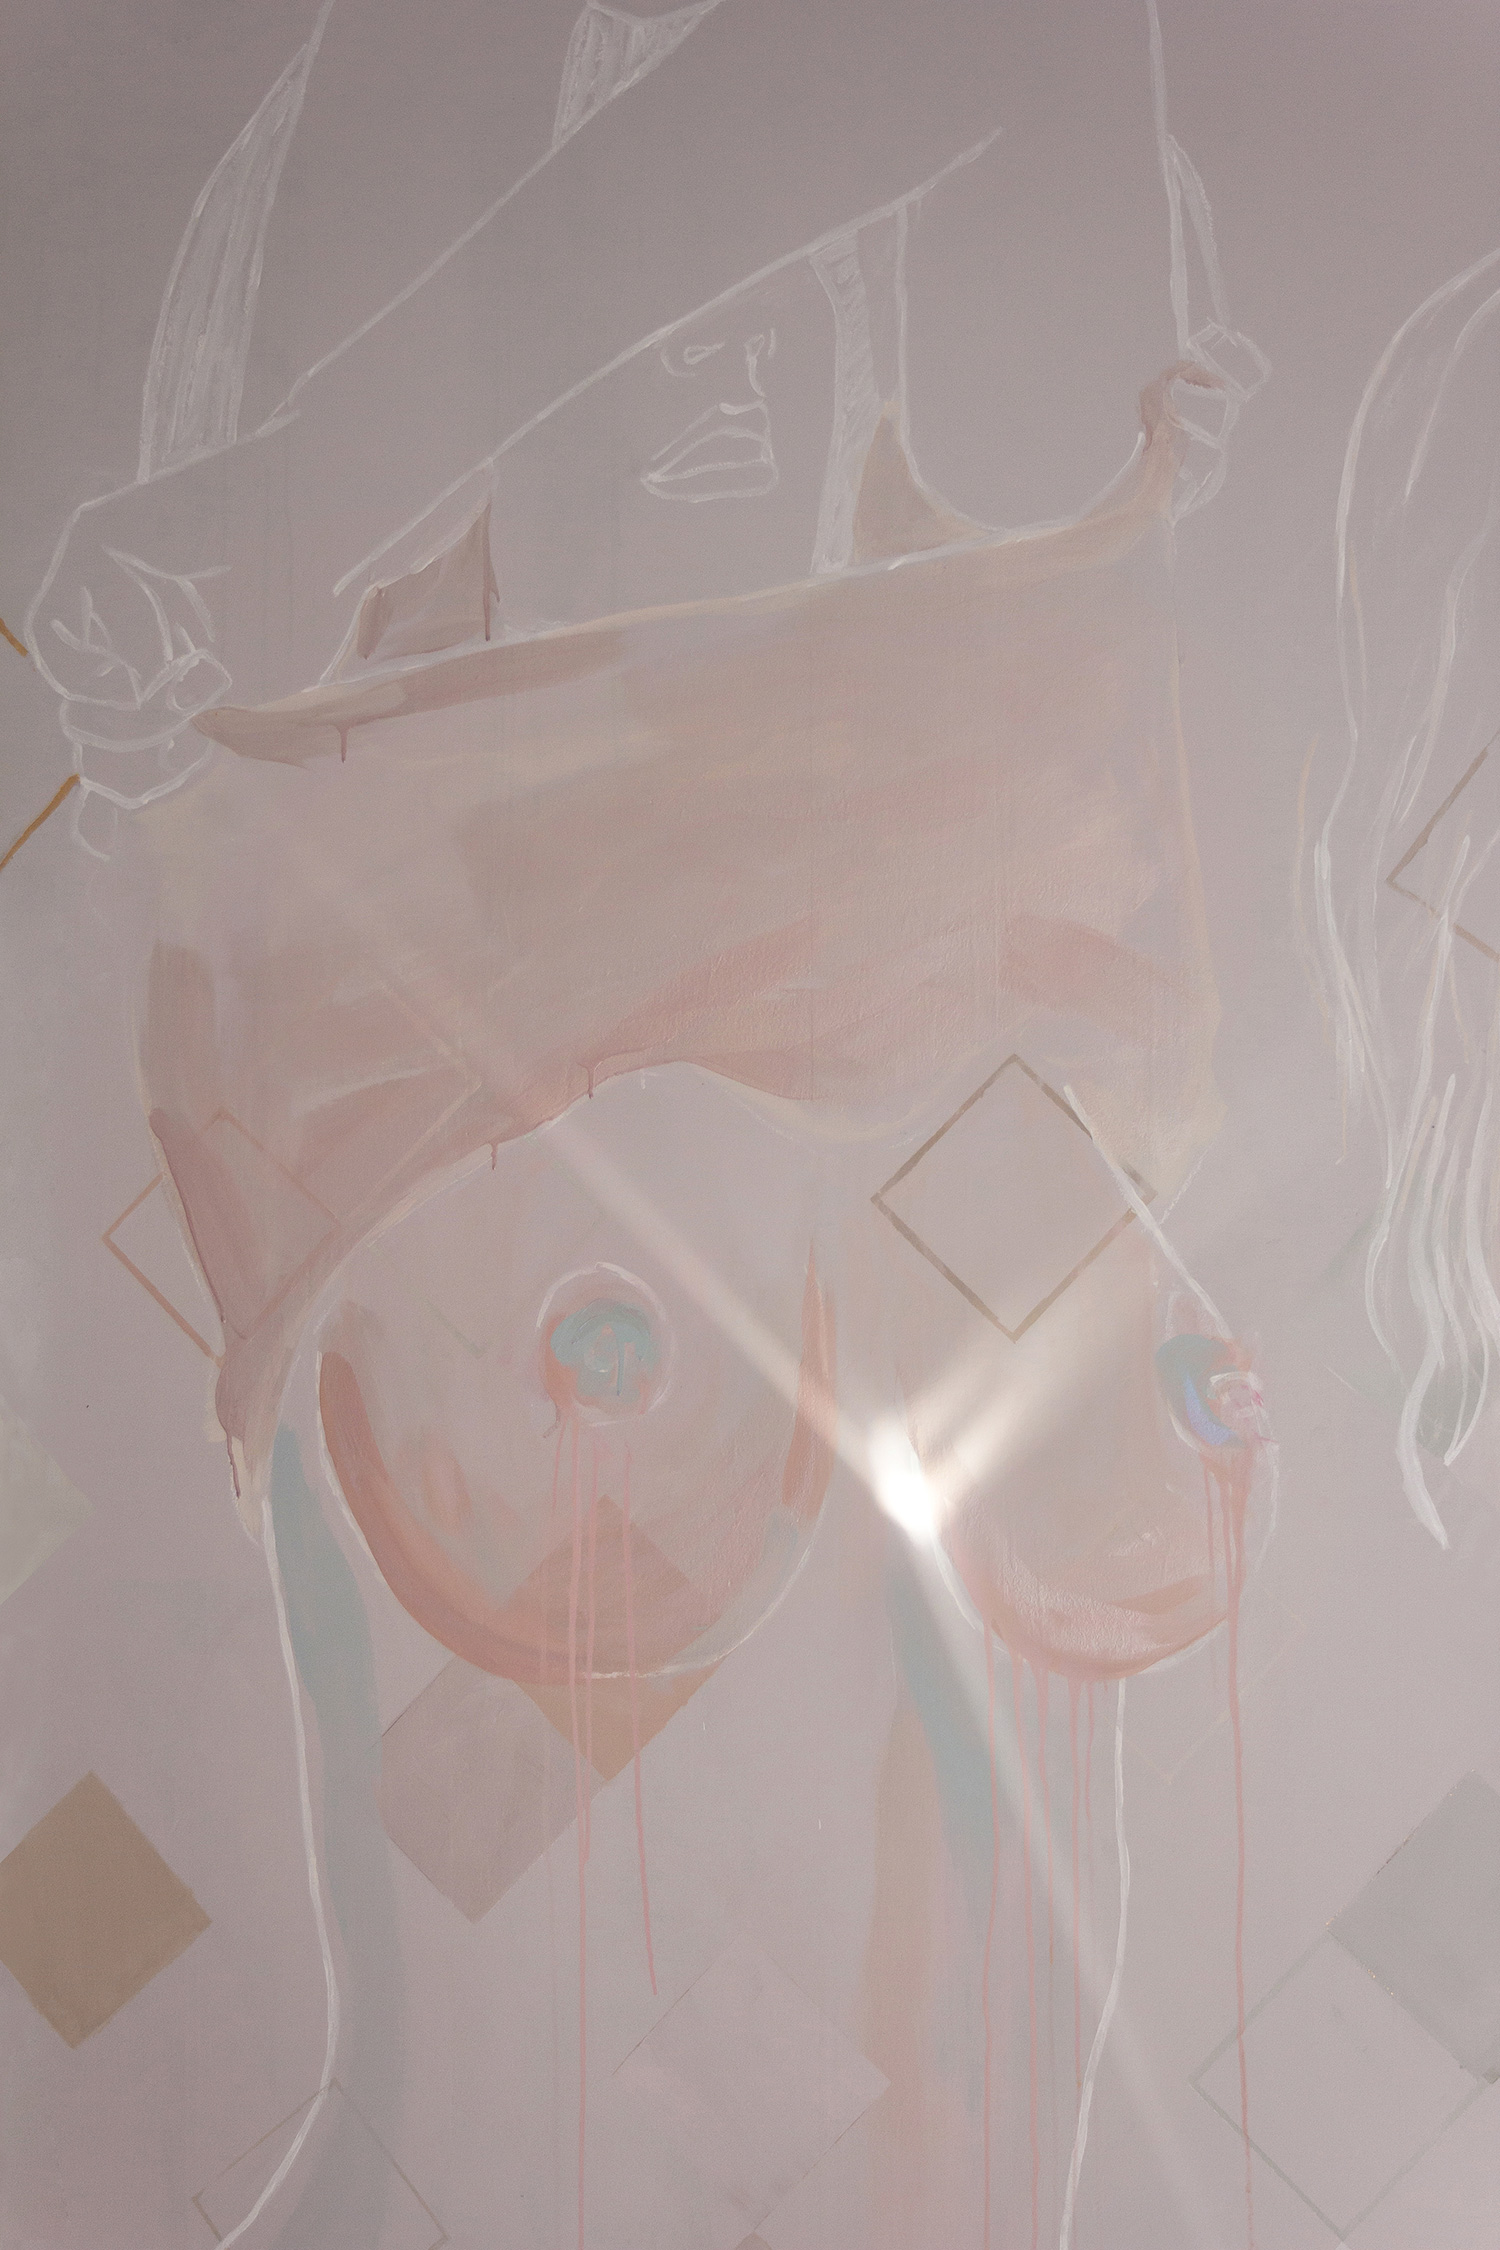 Topless woman mural - female is taking her top off and exposing her naked breasts. Painted in pastel and metallic colours with geometric shapes. Light illuminates the woman's heart.